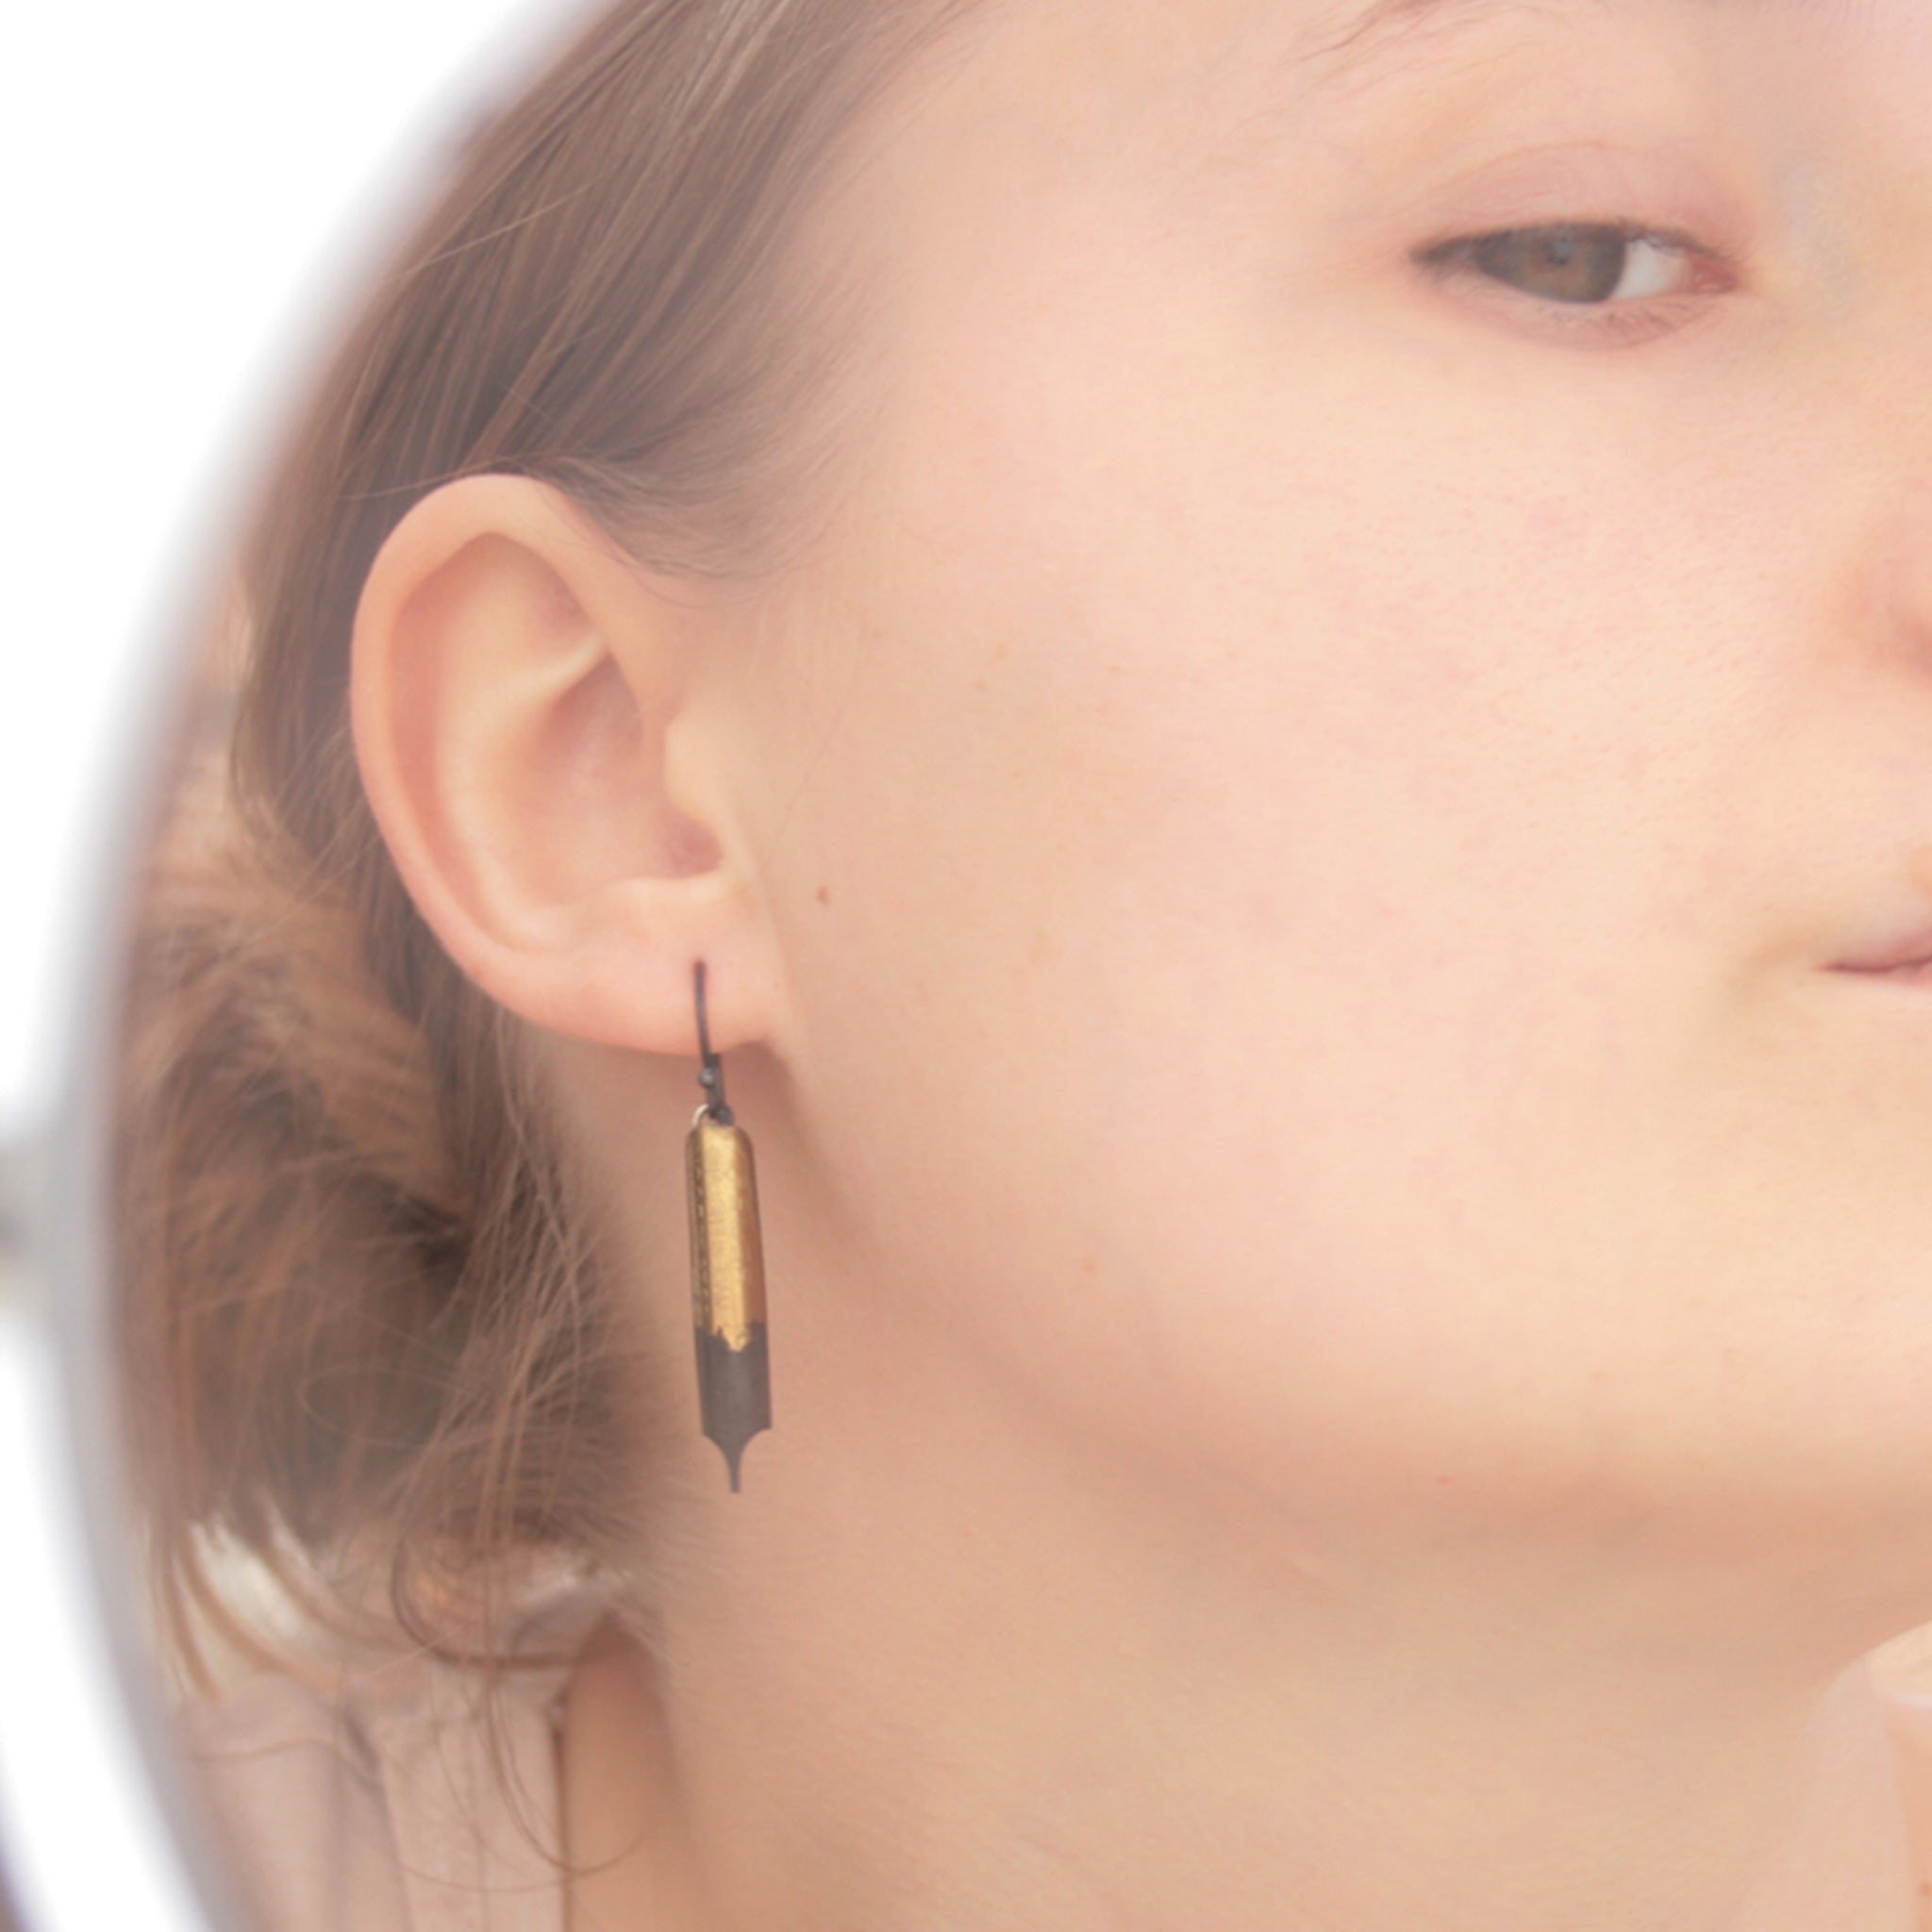 Quirky Earrings made of Pen Nibs on model